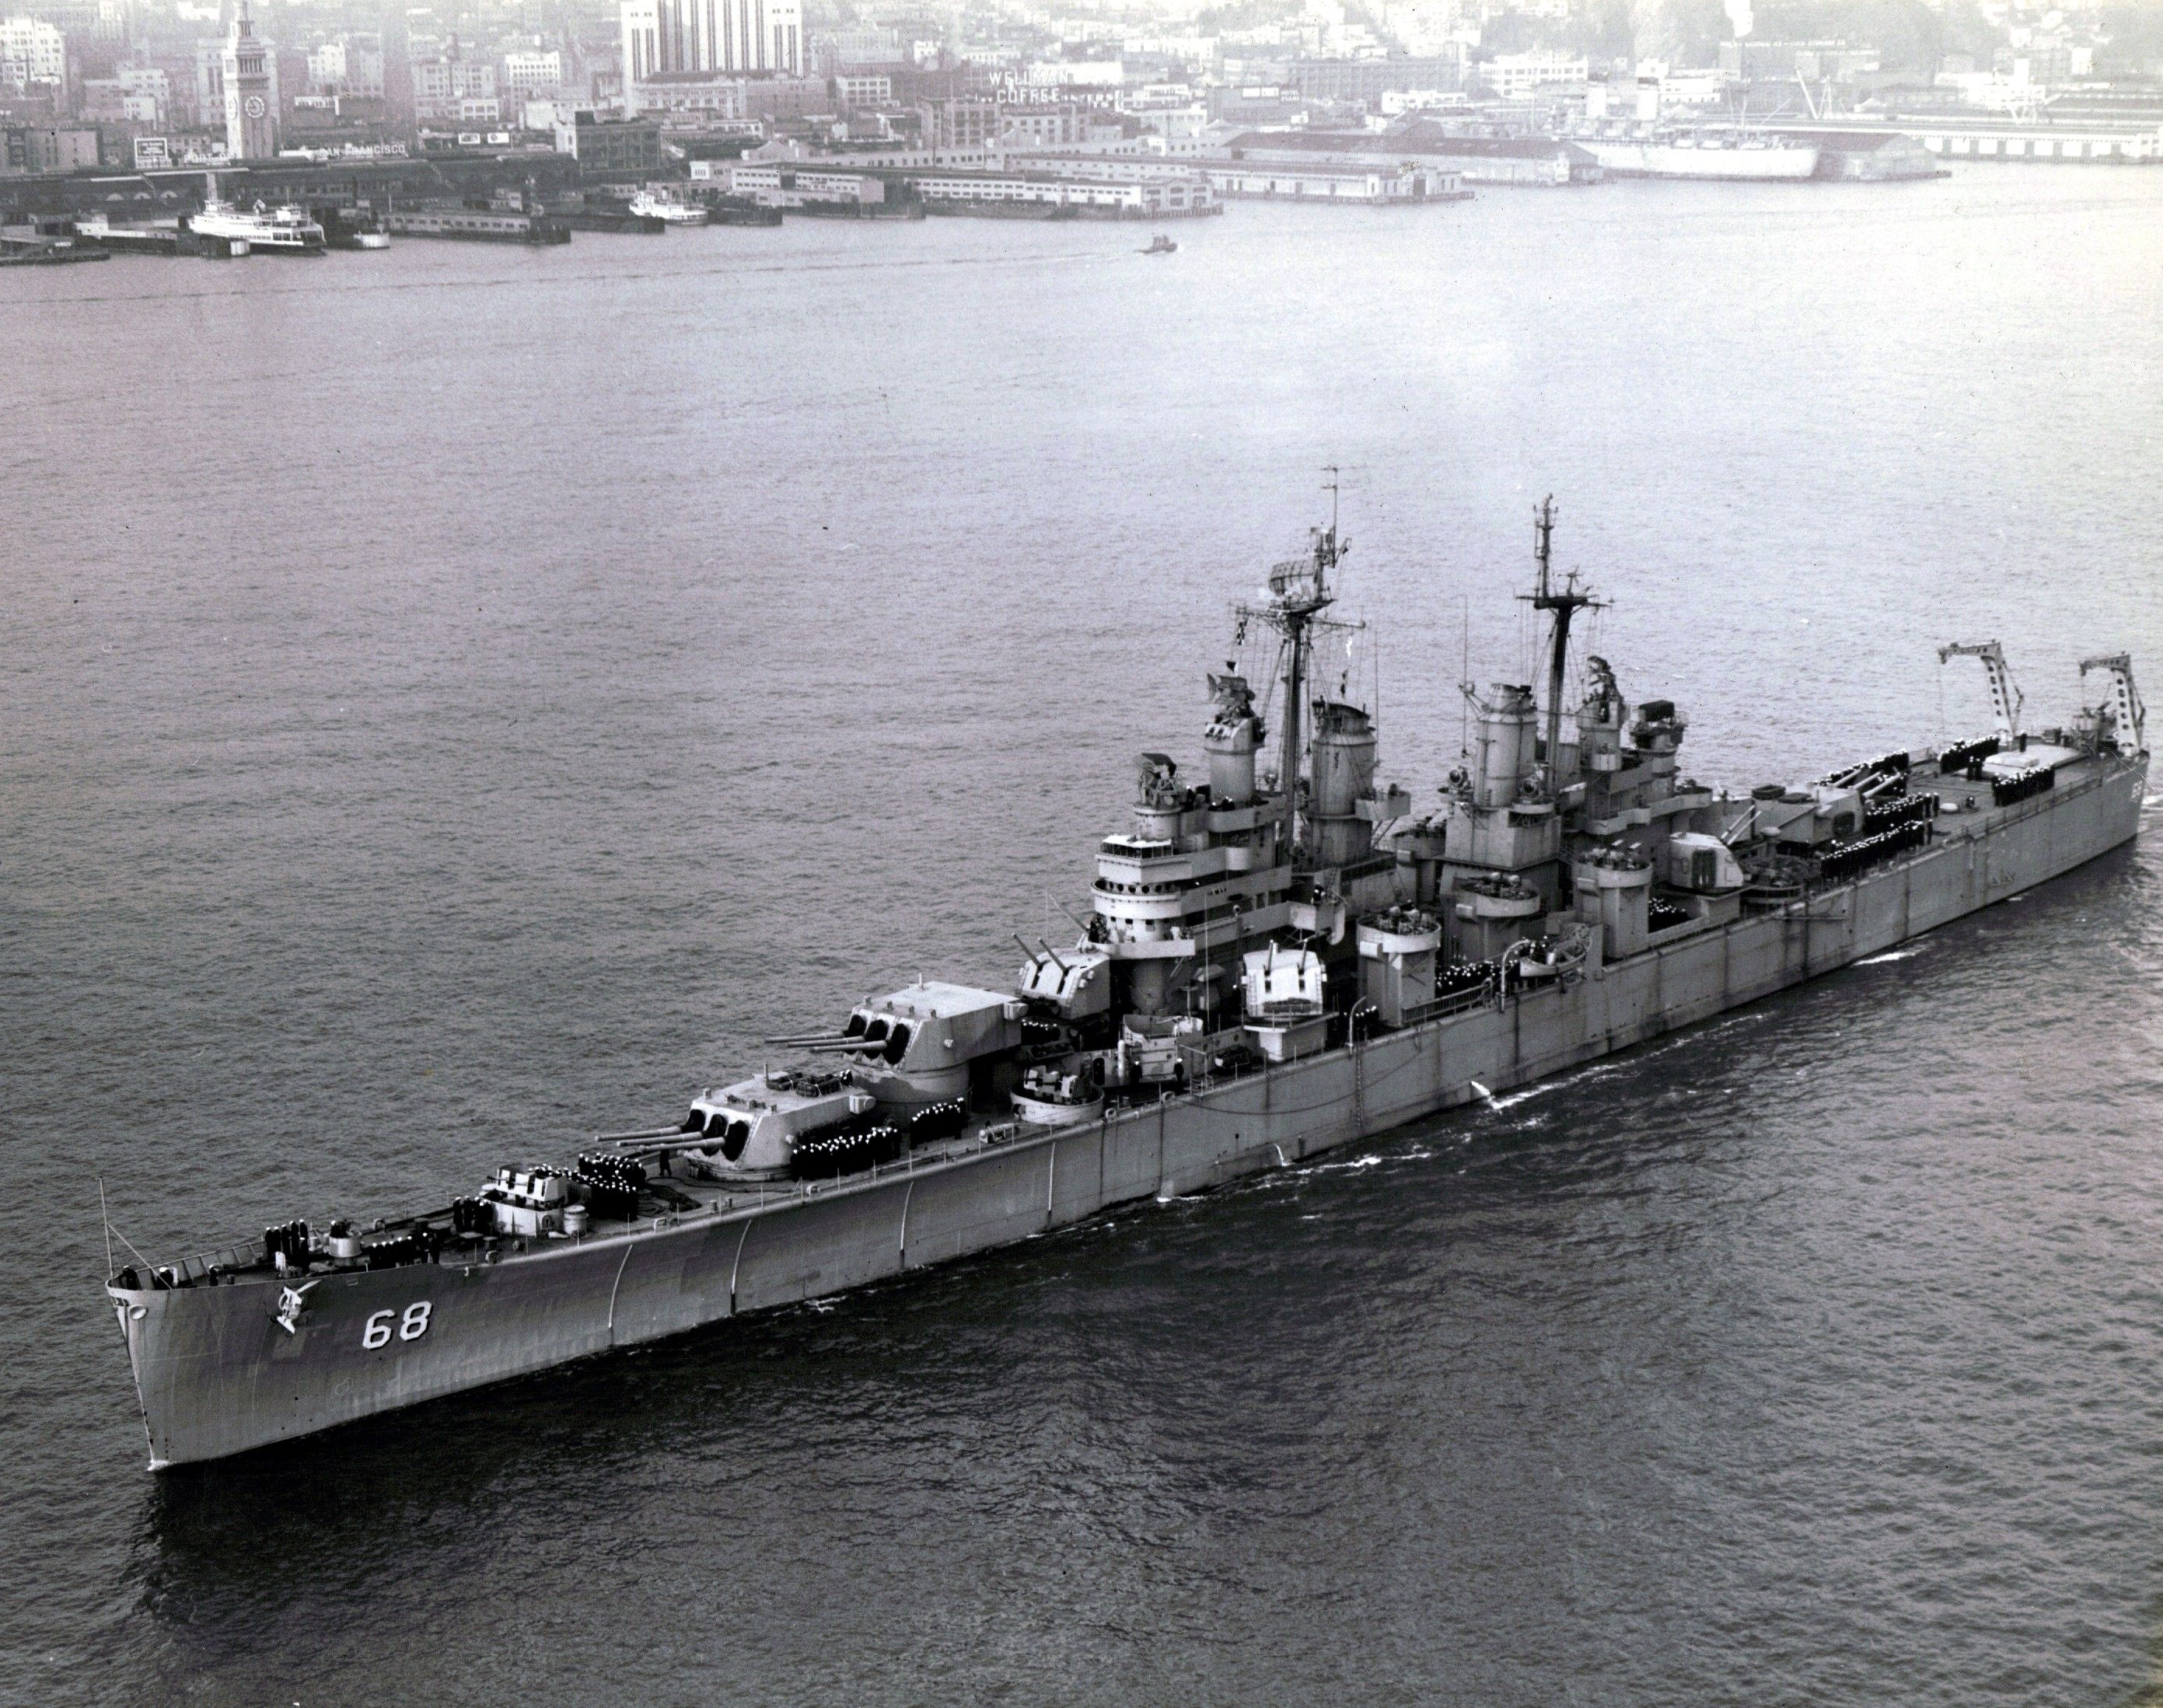 USS Baltimore (CA 68) (With images) | Heavy cruiser, Naval history ...